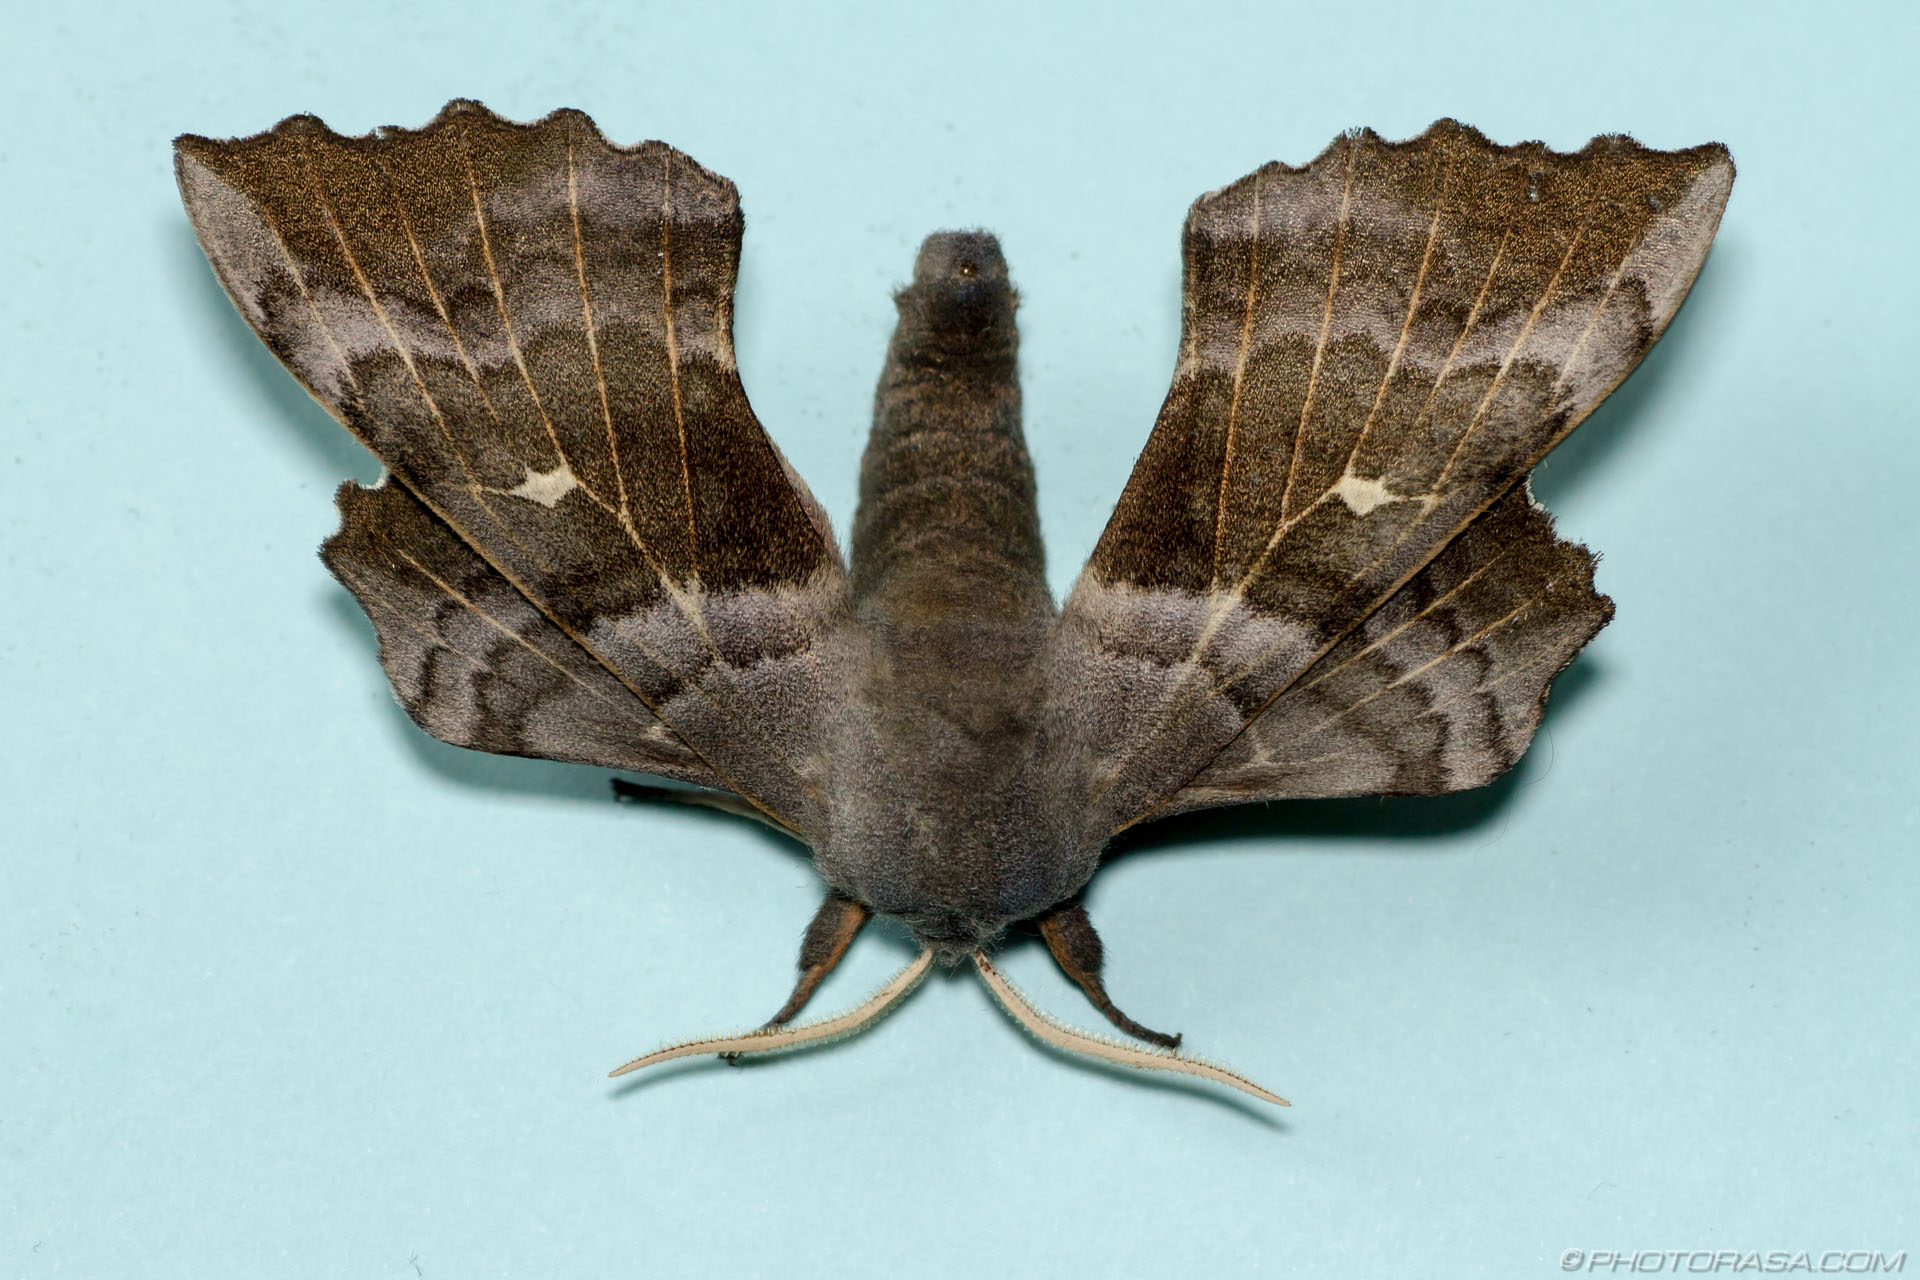 http://photorasa.com/poplar-hawk-moth/large-brown-moth-against-plain-background/